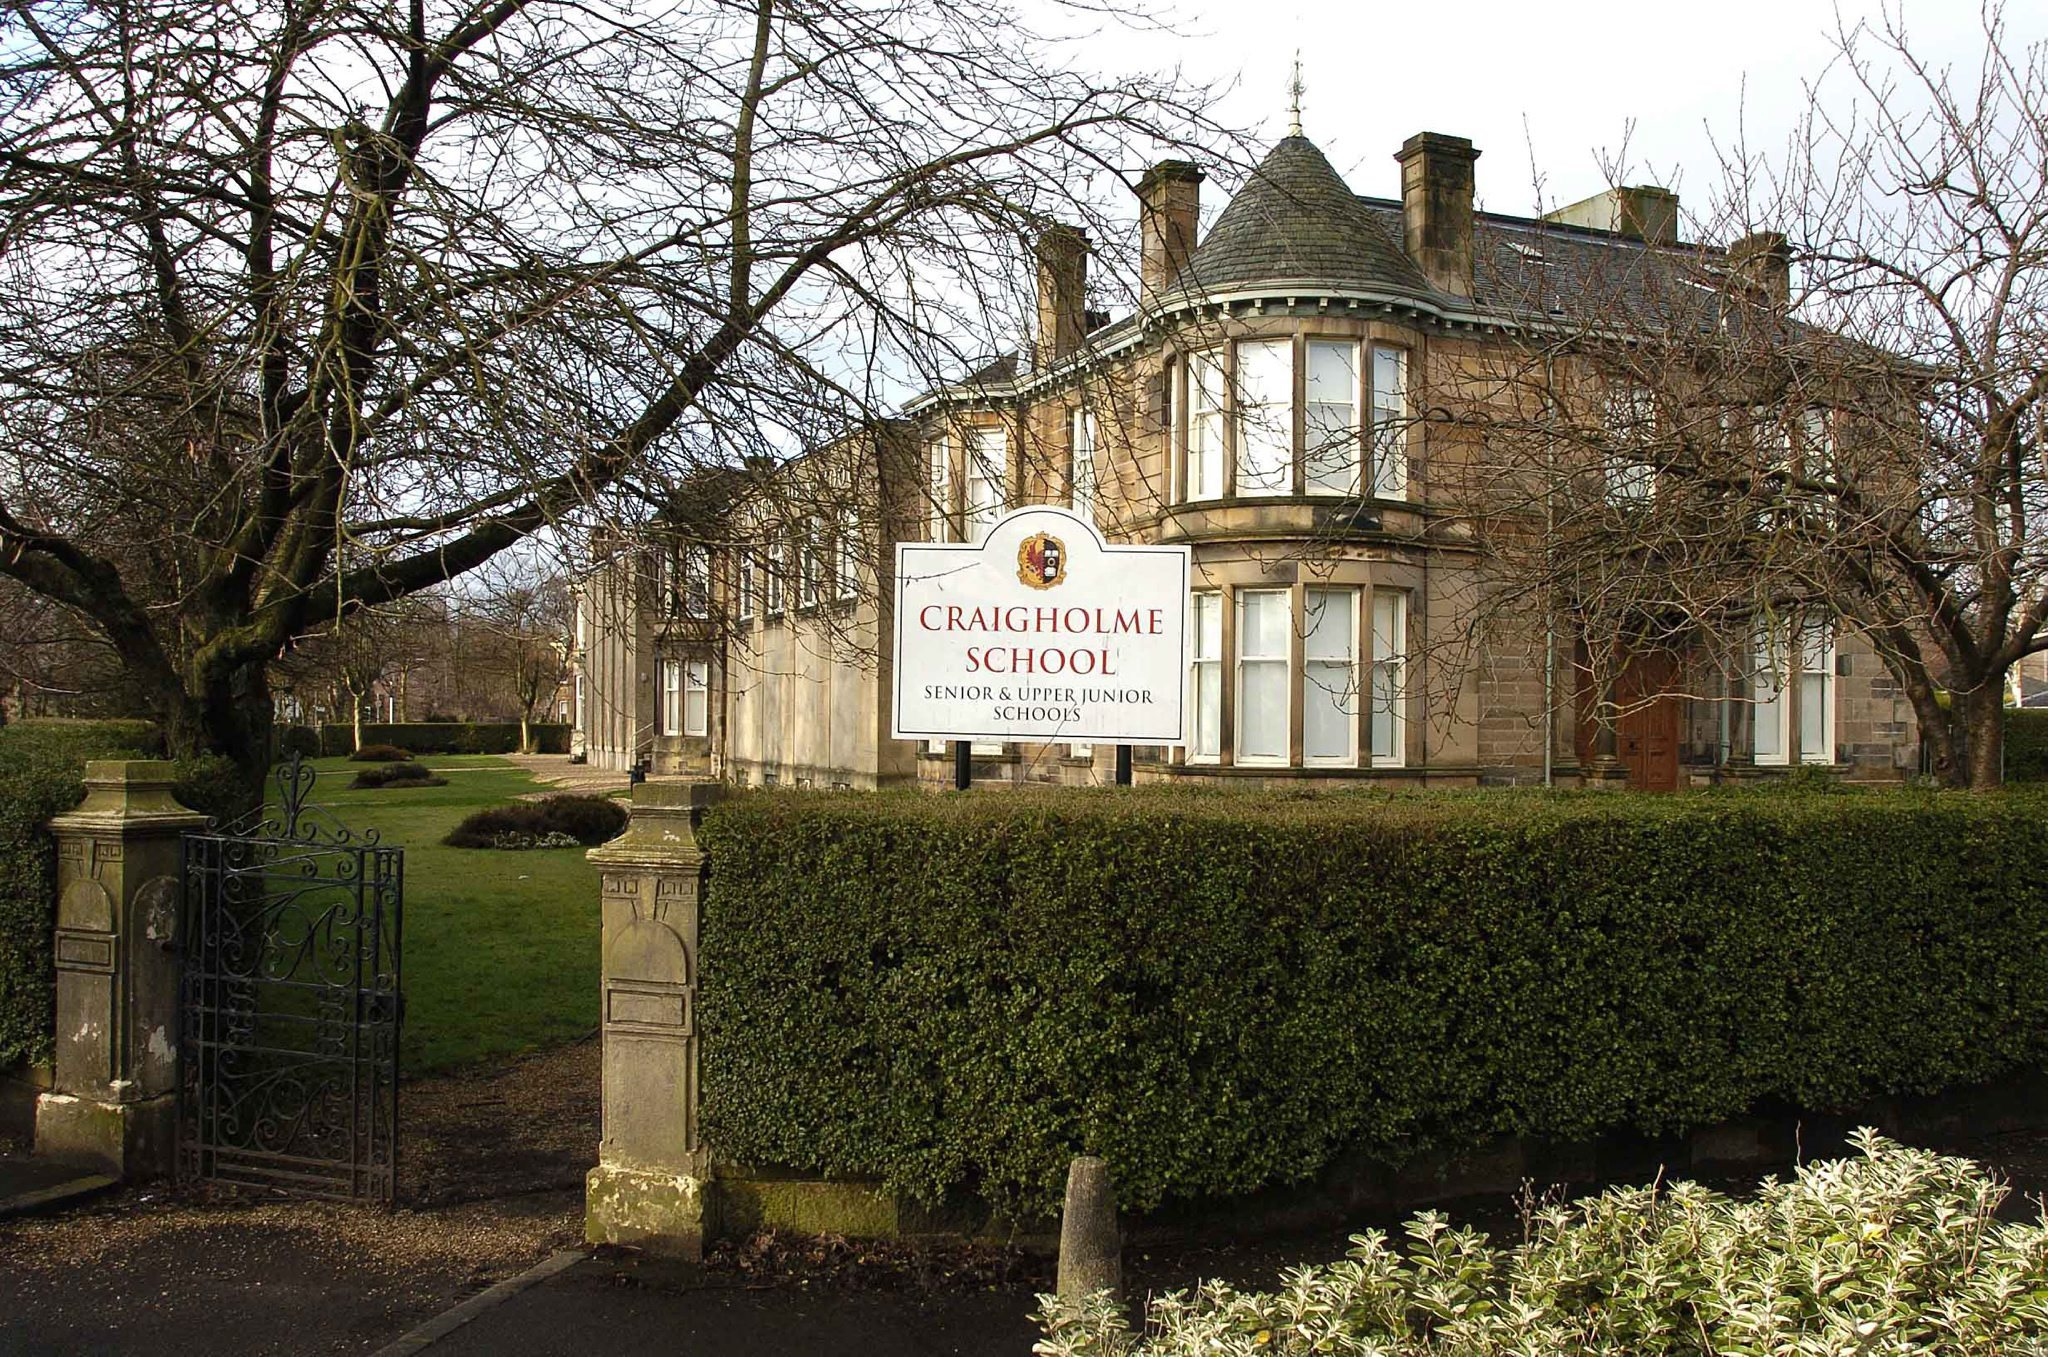 Glasgow school - one of the last private girls' secondaries in Scotland - to close